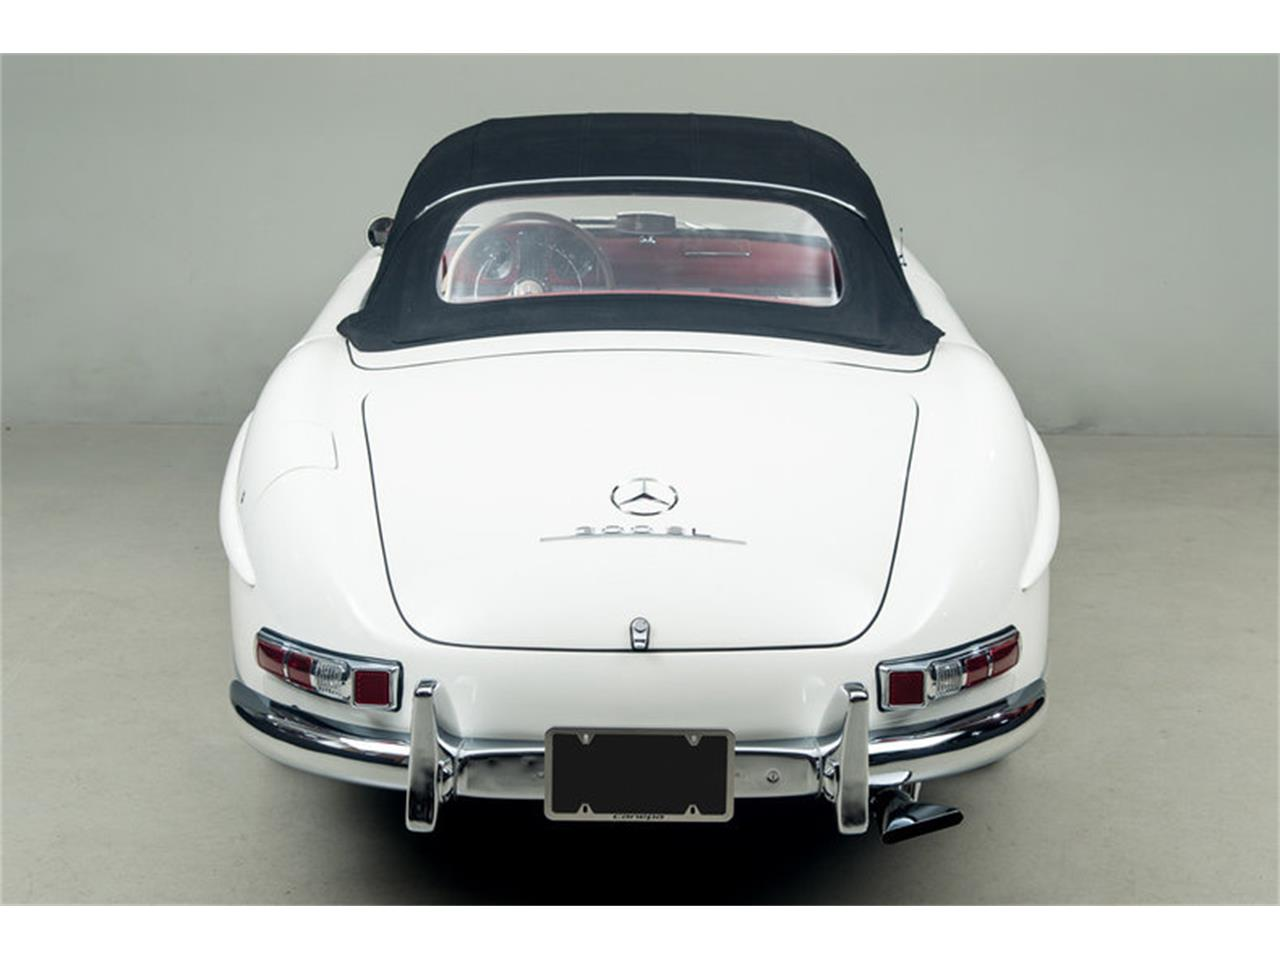 Large Picture of 1963 Mercedes-Benz 300SL Roadster located in California Auction Vehicle - EFPZ